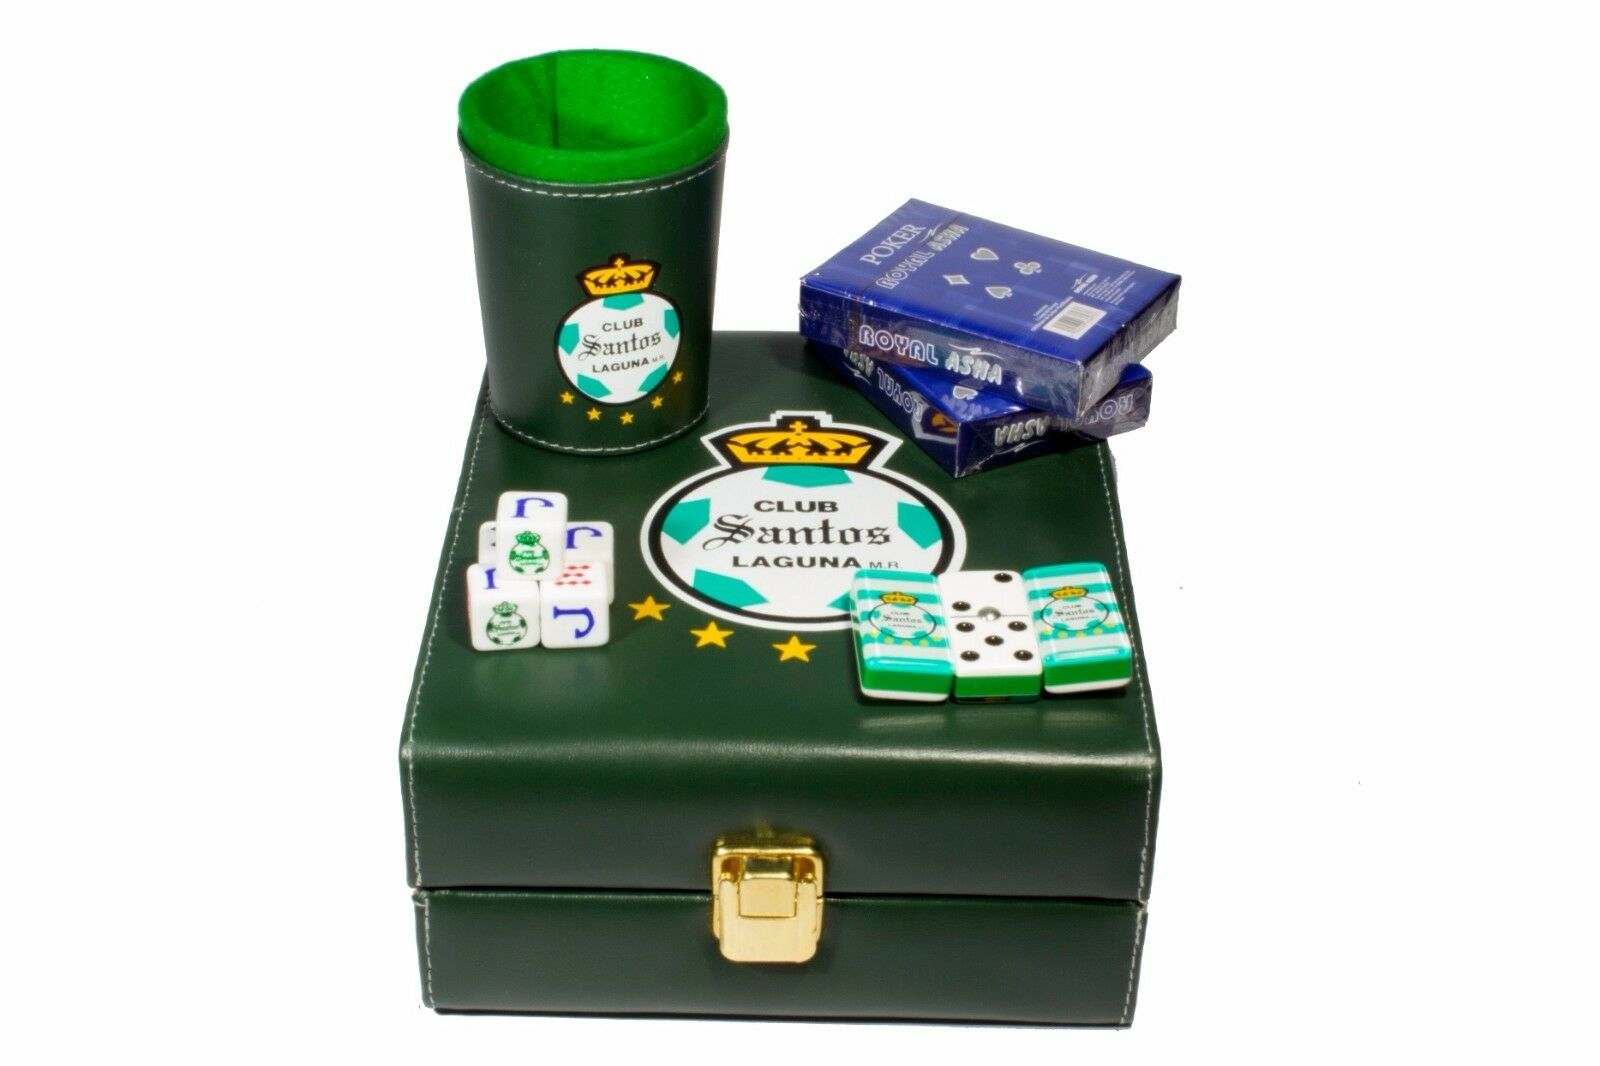 Club Santos Laguna Deluxe Set 3 Games: Domino, Dice Cup, 2 Poker Cards